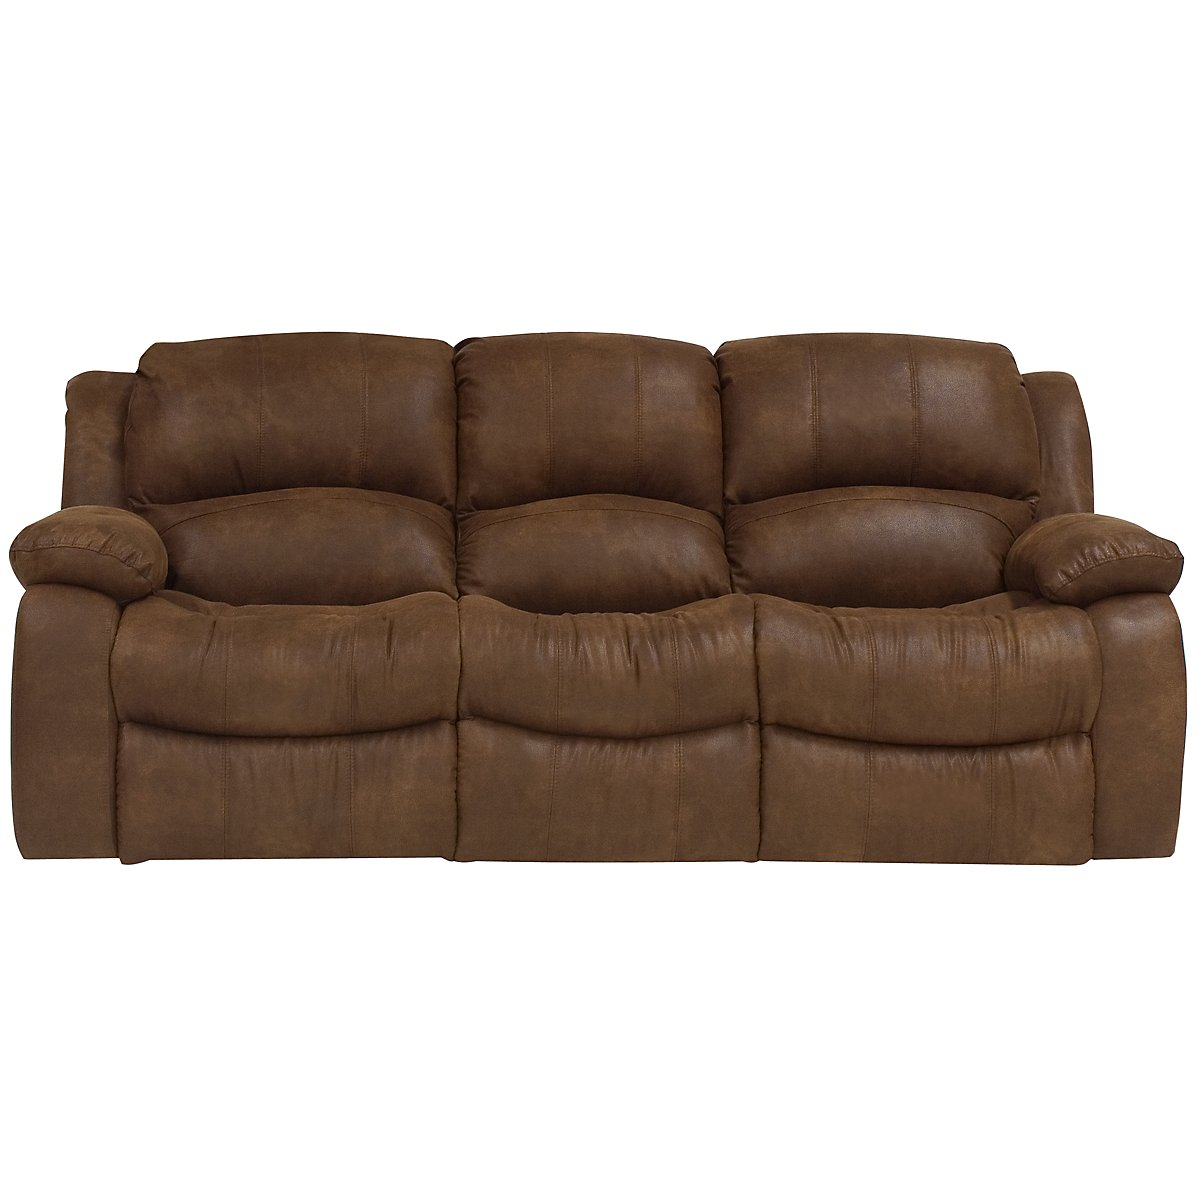 Microfiber power reclining sofa hereo sofa for Couch and loveseat